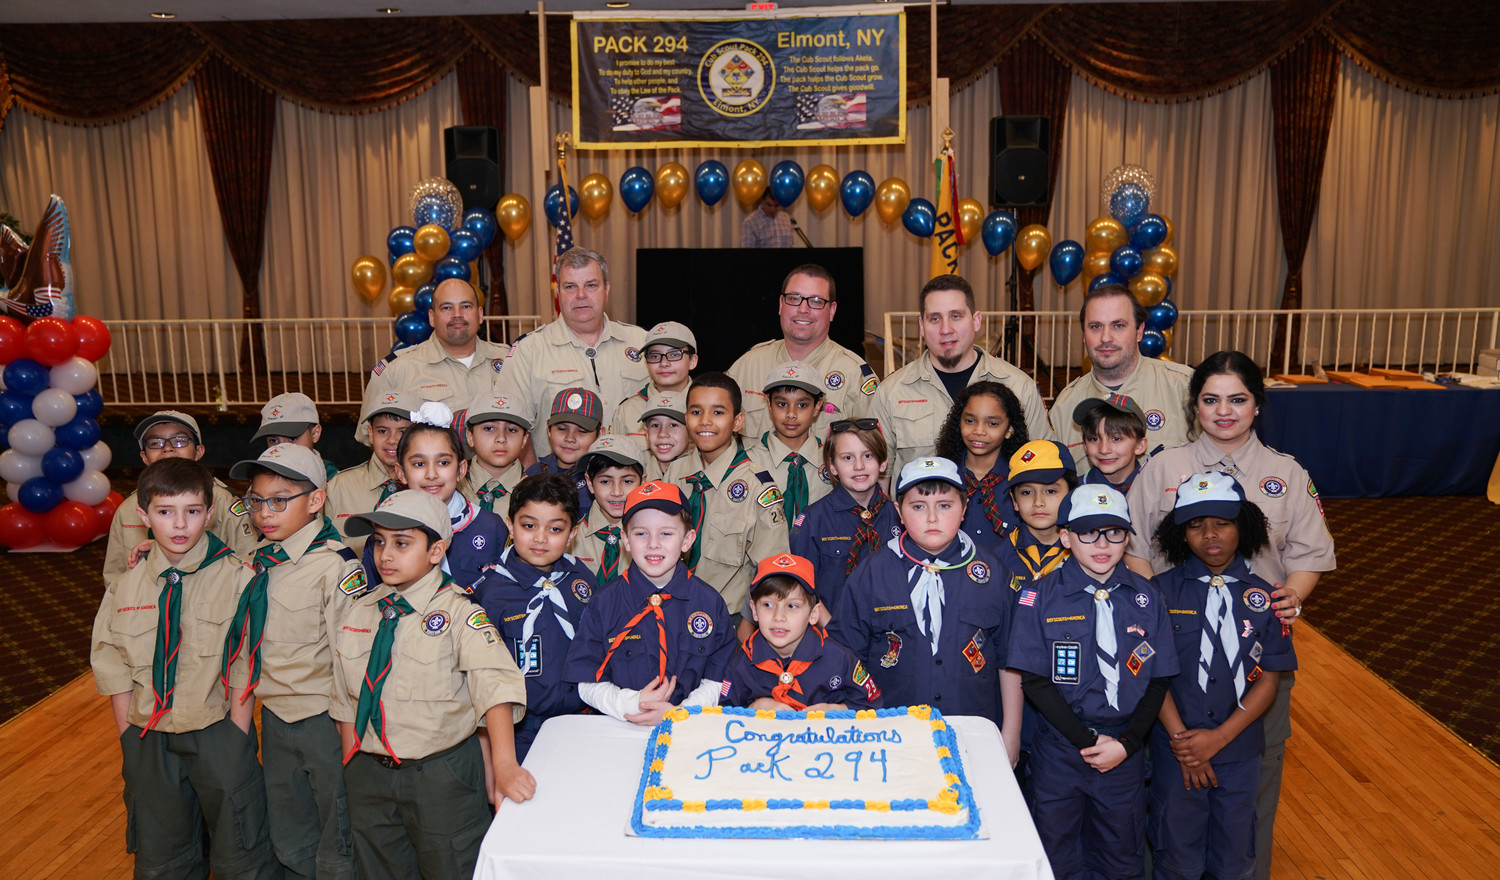 Elmont Cub Scout Pack 294 held a moving-up ceremony for younger scouts earlier in the year. Nine girls have showed interest in joining the group after the BSA announced that girls would be able to join scouts in 2018.